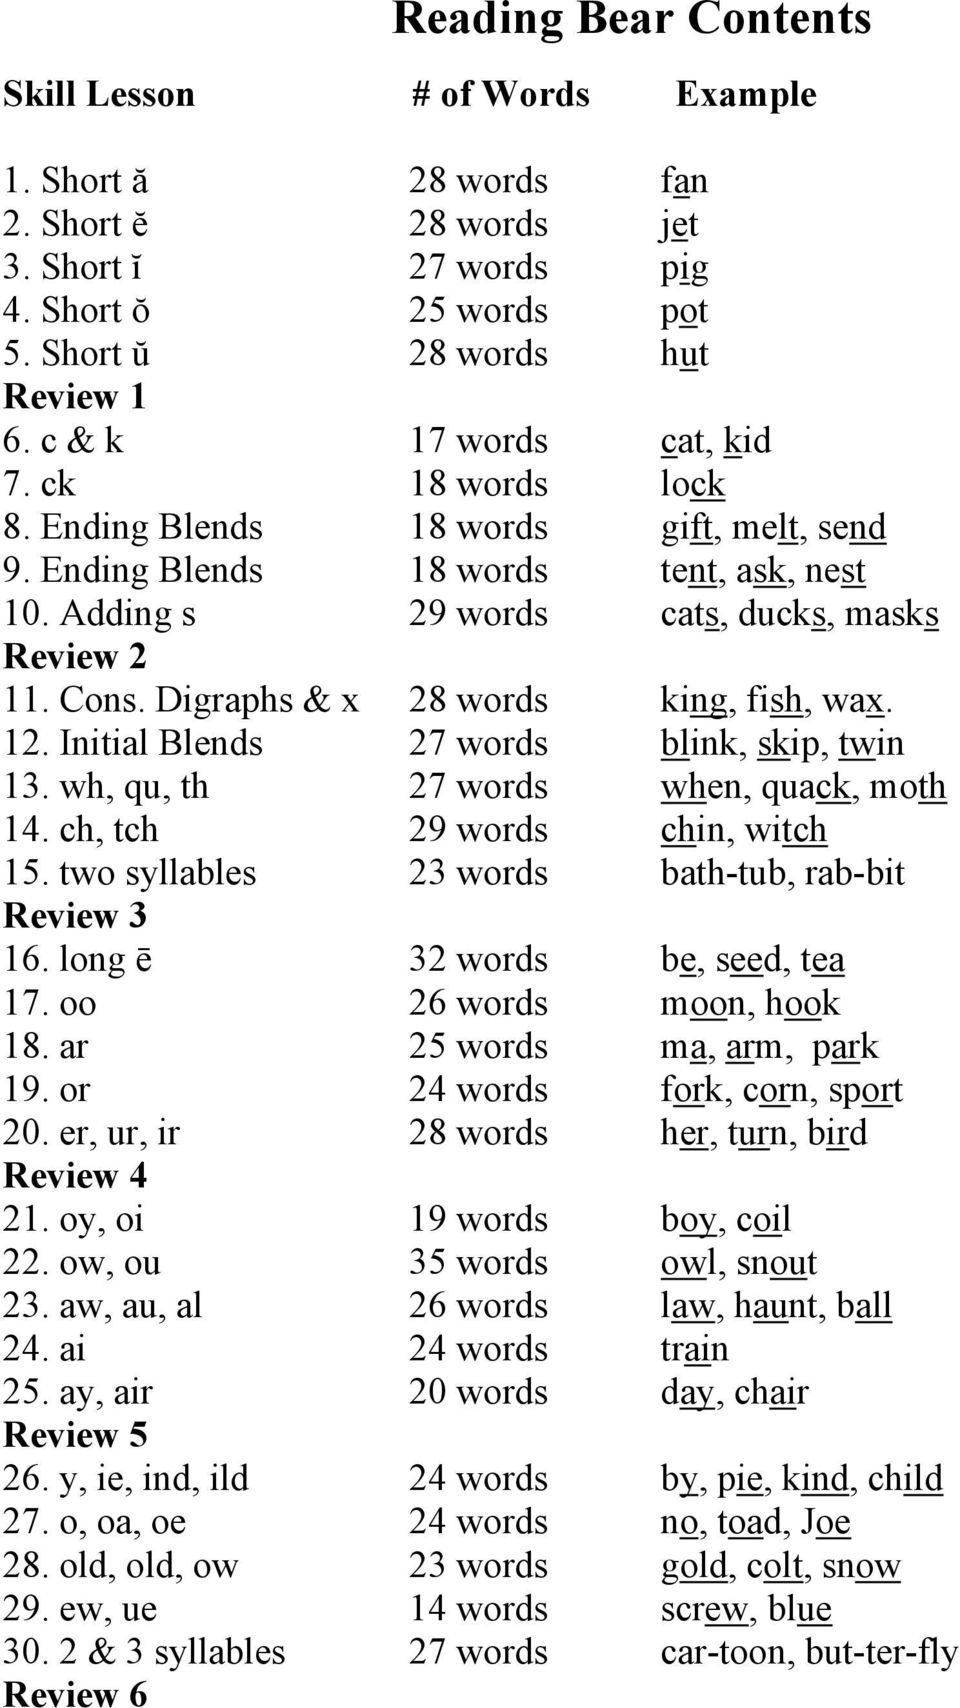 Digraphs & x 28 words king, fish, wax. 12. Initial Blends 27 words blink, skip, twin 13. wh, qu, th 27 words when, quack, moth 14. ch, tch 29 words chin, witch 15.